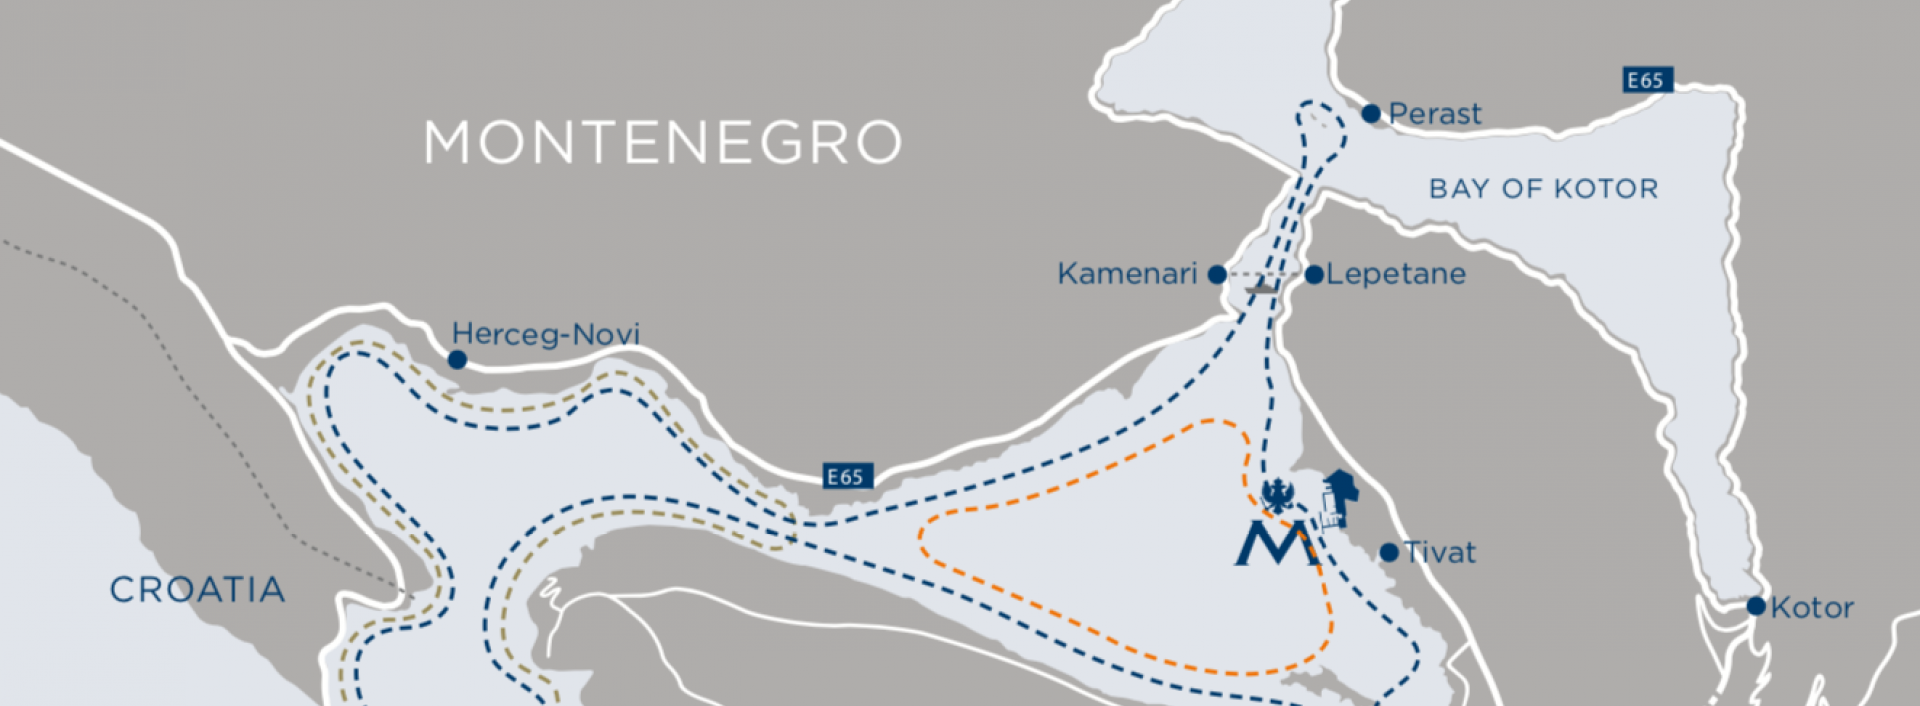 The Montenegro race track revealed